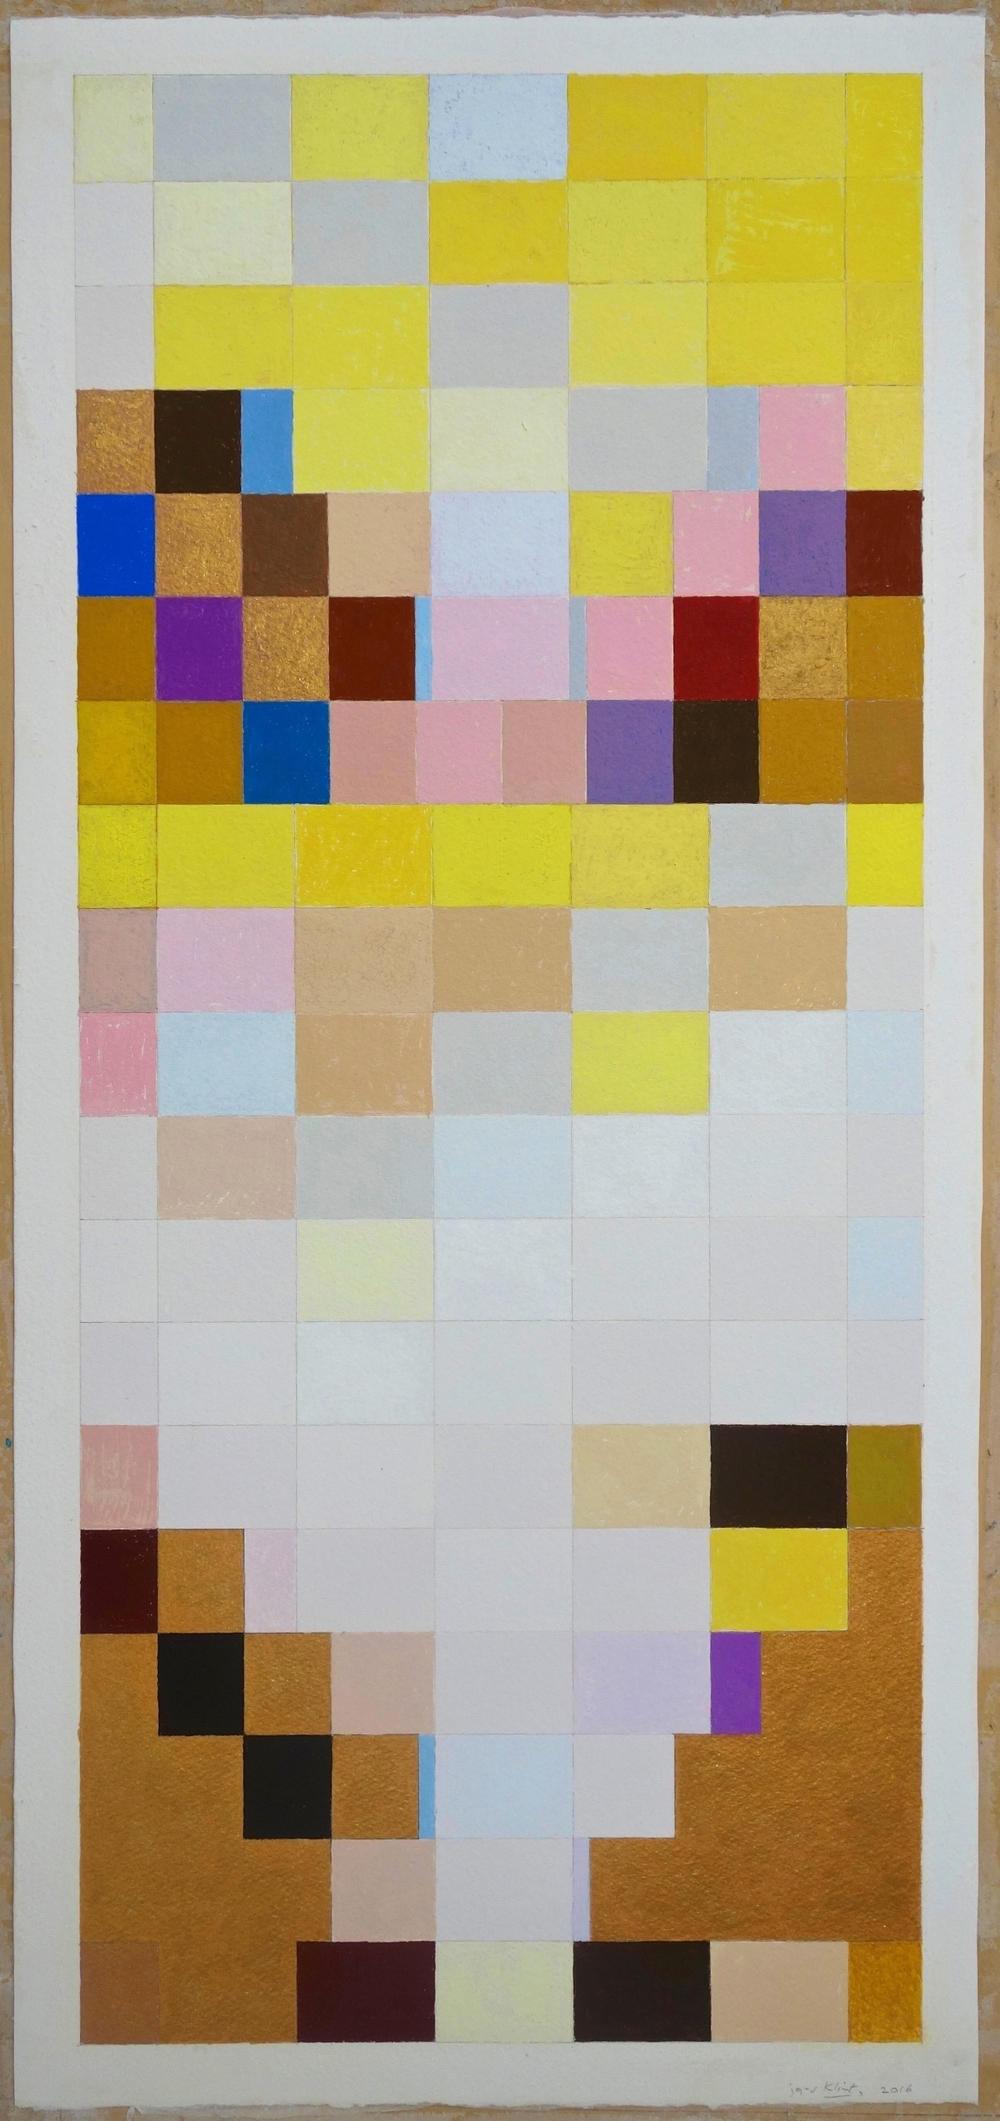 Klimt (2016) Gouache and Gold on Paper. paper 30x14; image 28.5x12.25 in.